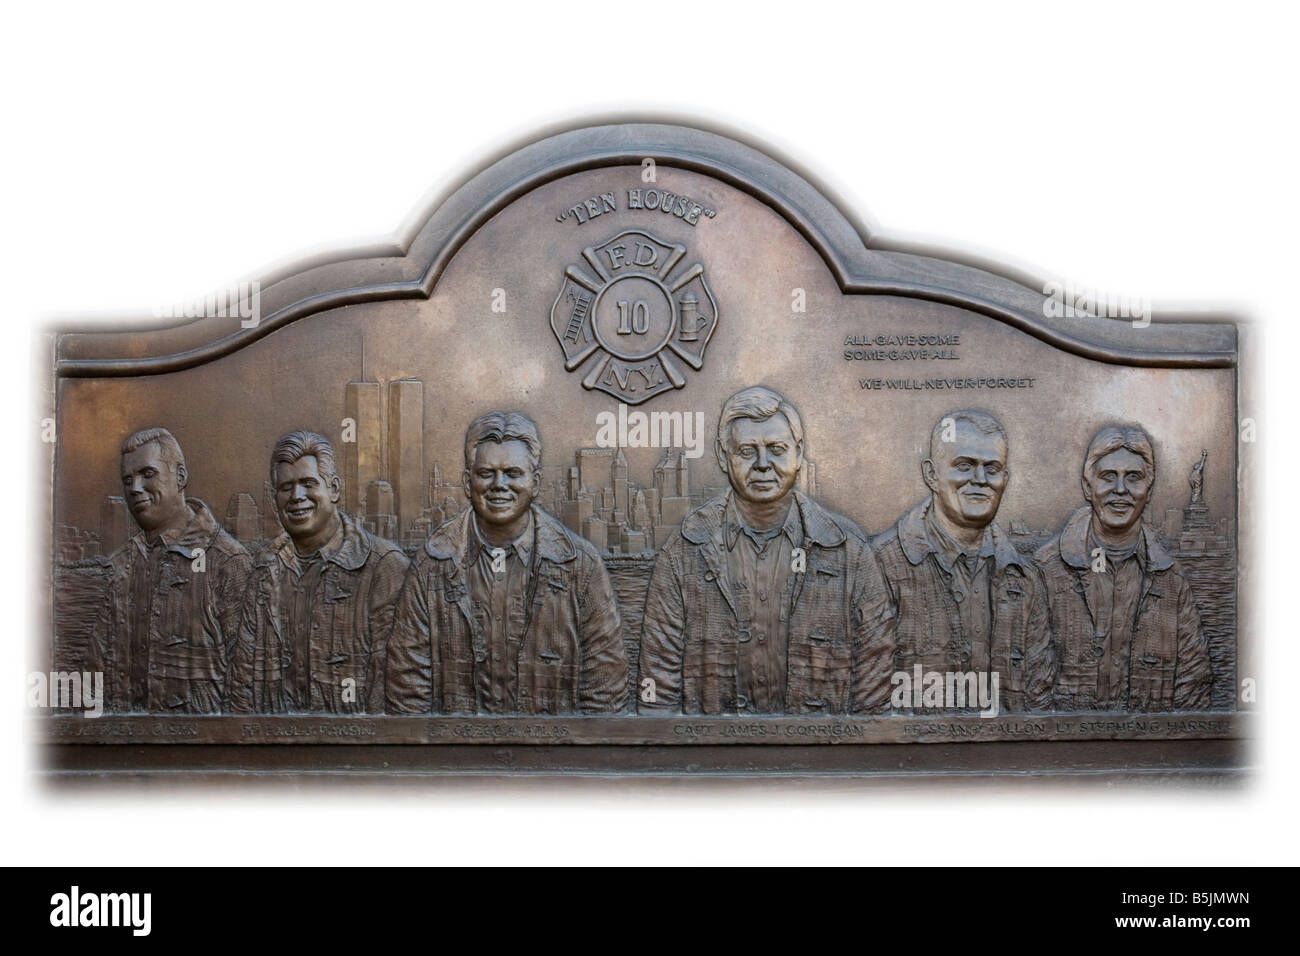 Memorial plaque for those lost on 9/11 at World Trade Centre, Manhattan, New York City, USA - Stock Image